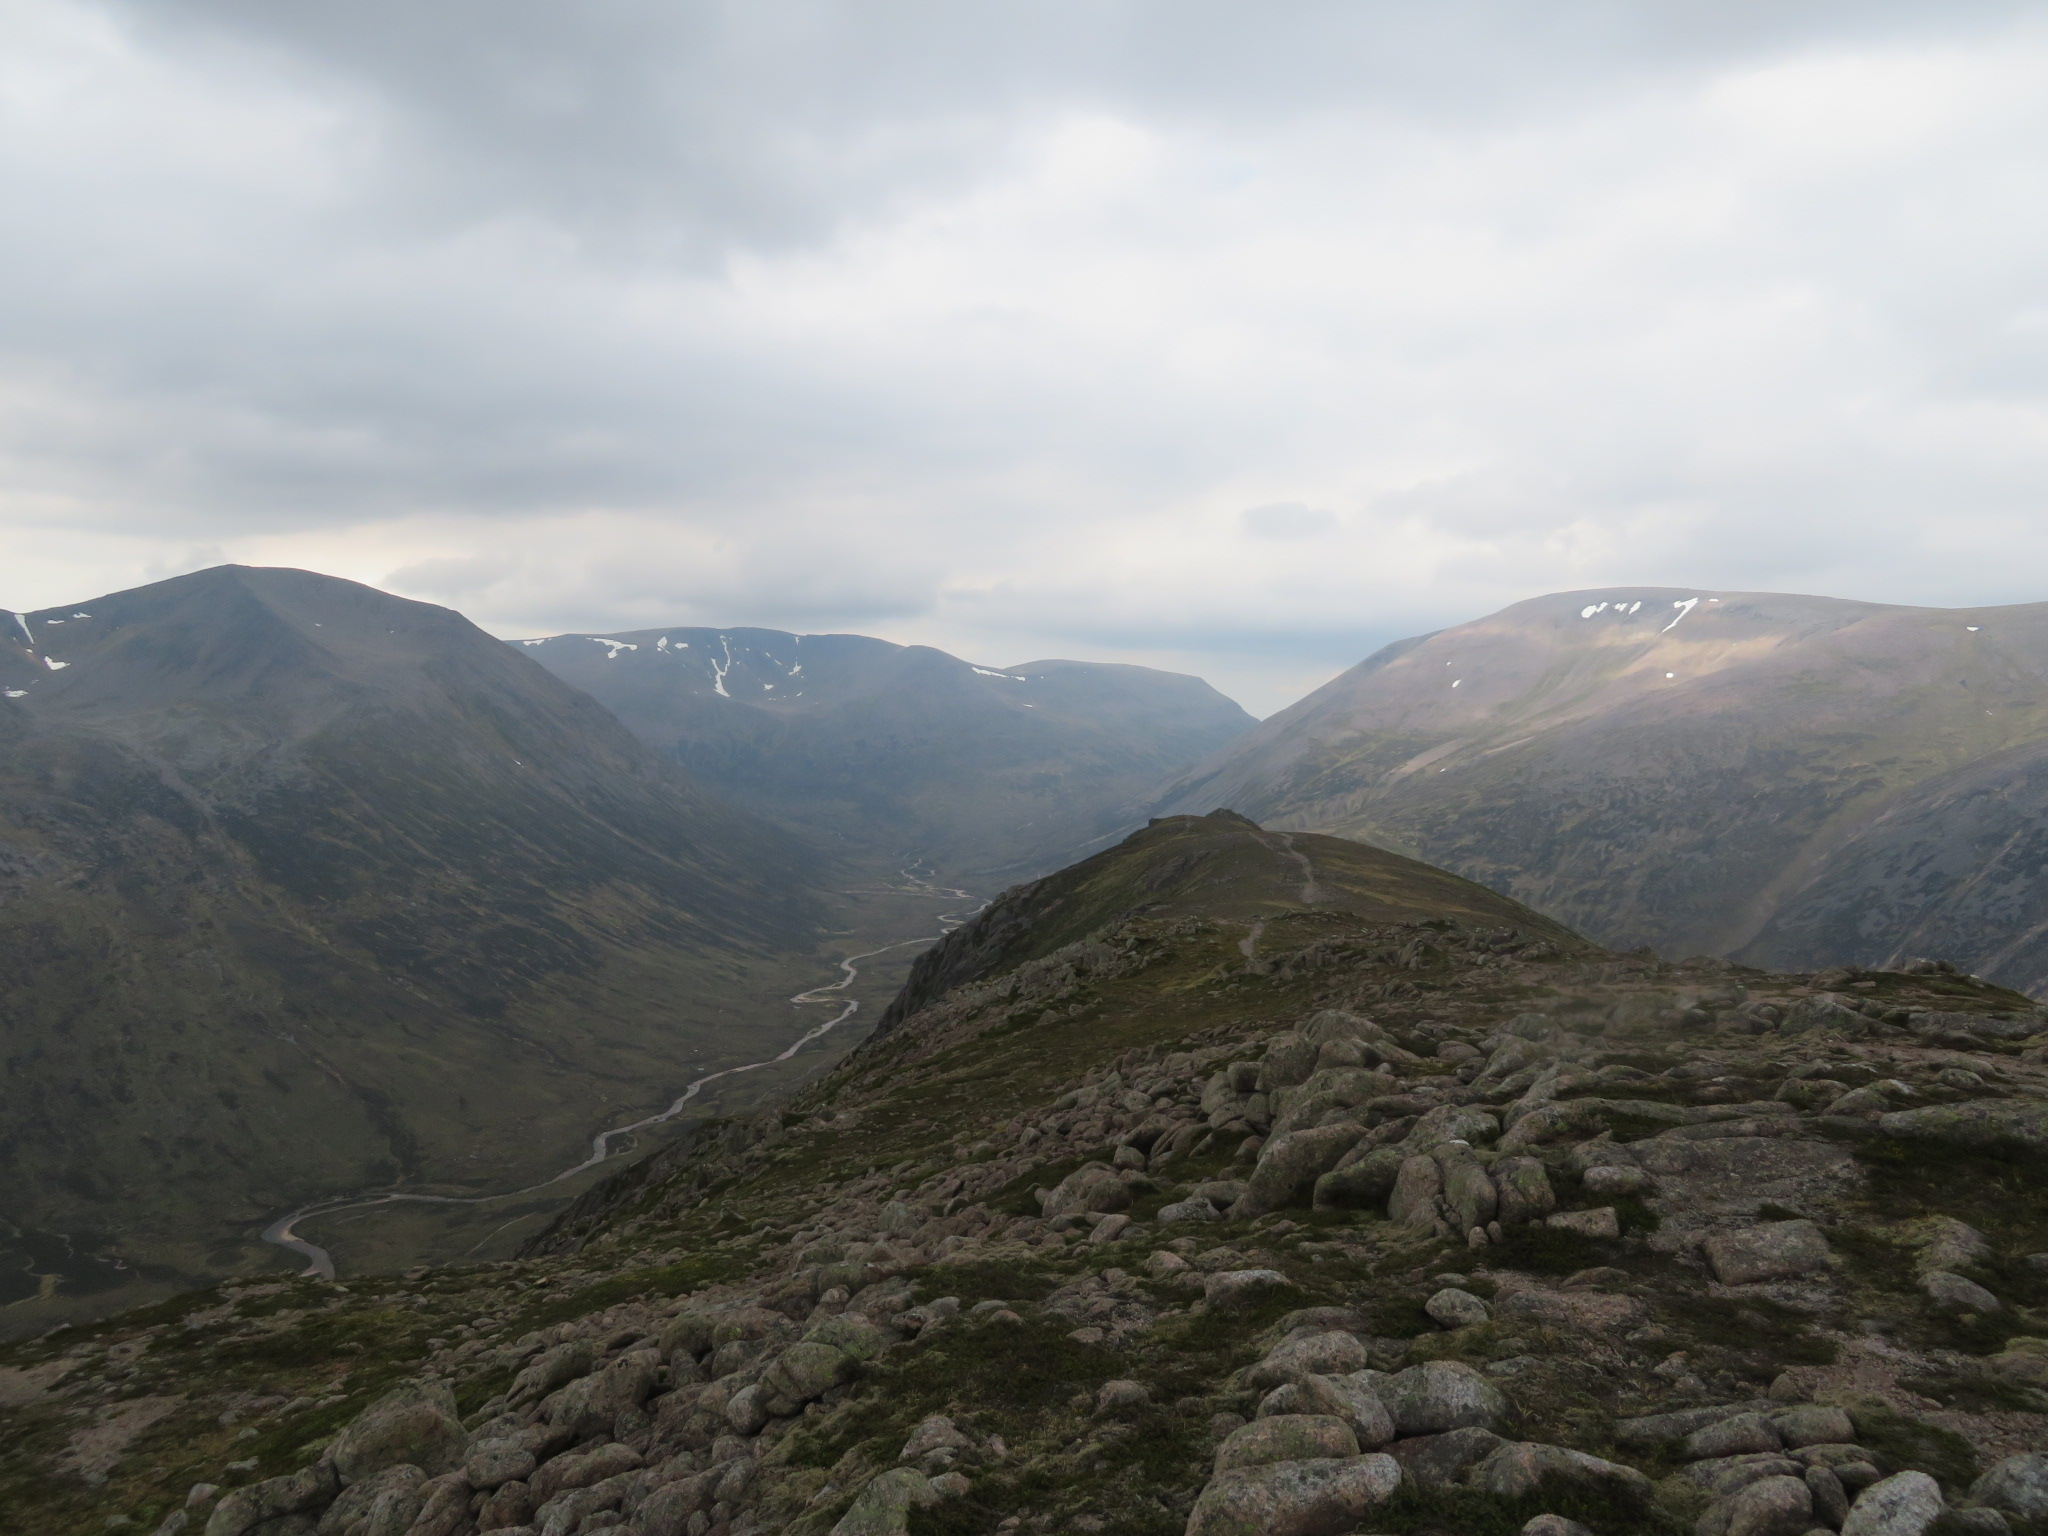 Upper Dee Valley: Cairn Toul, Braeriach, Bern Macdui and  upper Dee towards Lairig Ghru,  from Carn A Mhaim - © William Mackesy